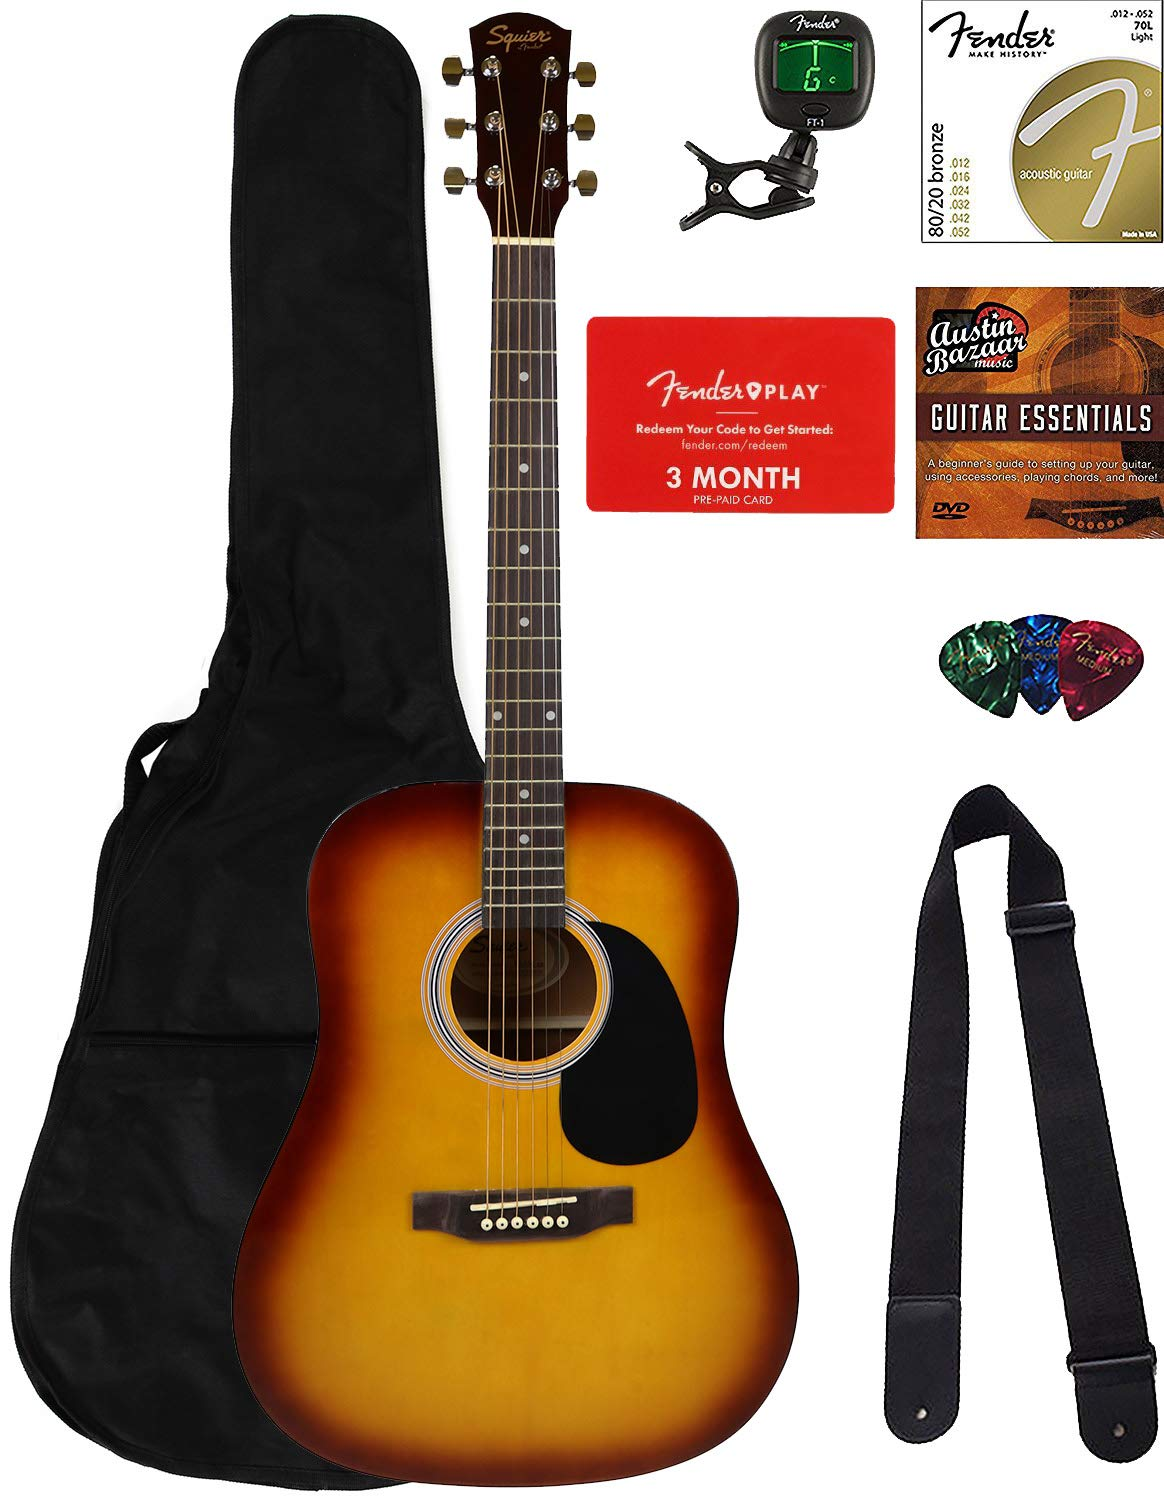 Fender Squier Dreadnought Acoustic Guitar - Sunburst Bundle with Fender Play Online Lessons, Gig Bag, Tuner, Strings, Strap, Picks, and Austin Bazaar Instructional DVD by Fender (Image #1)